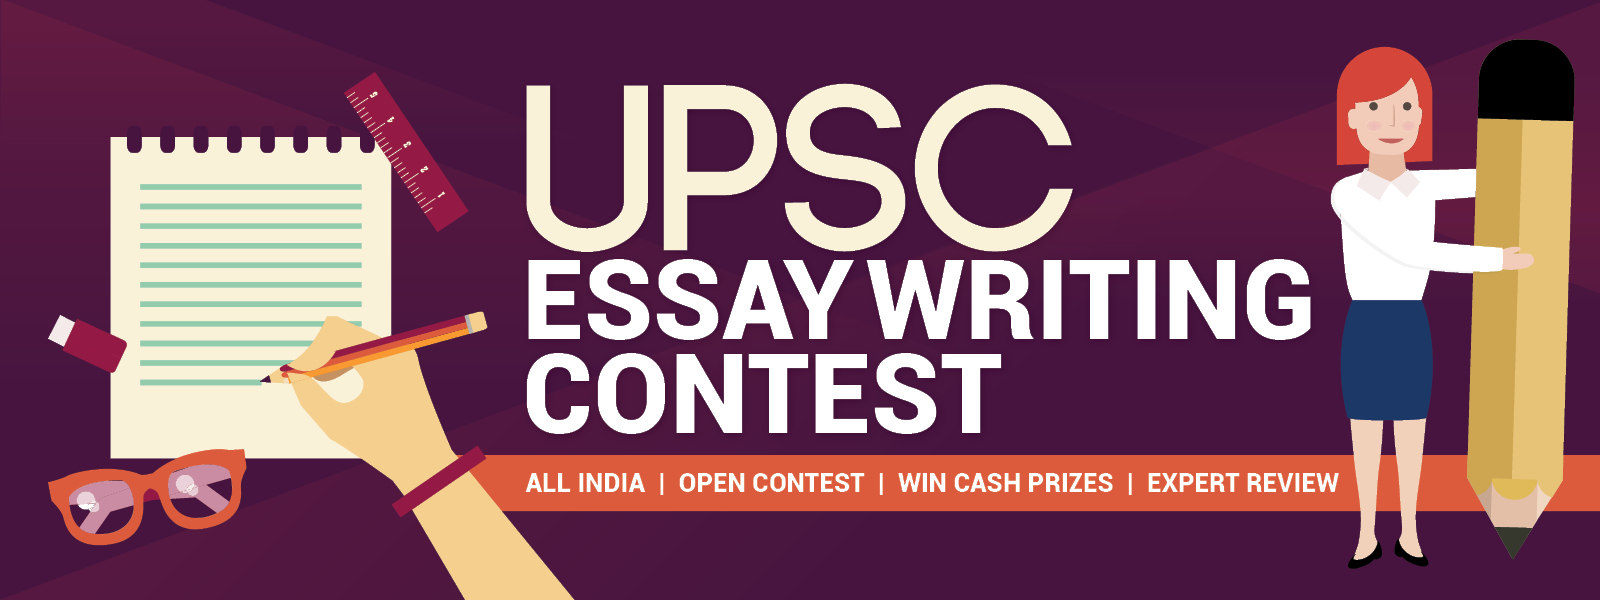 015 Essay Example Writing Contest Incredible Competition For College Students By Essayhub Sample Mechanics Full